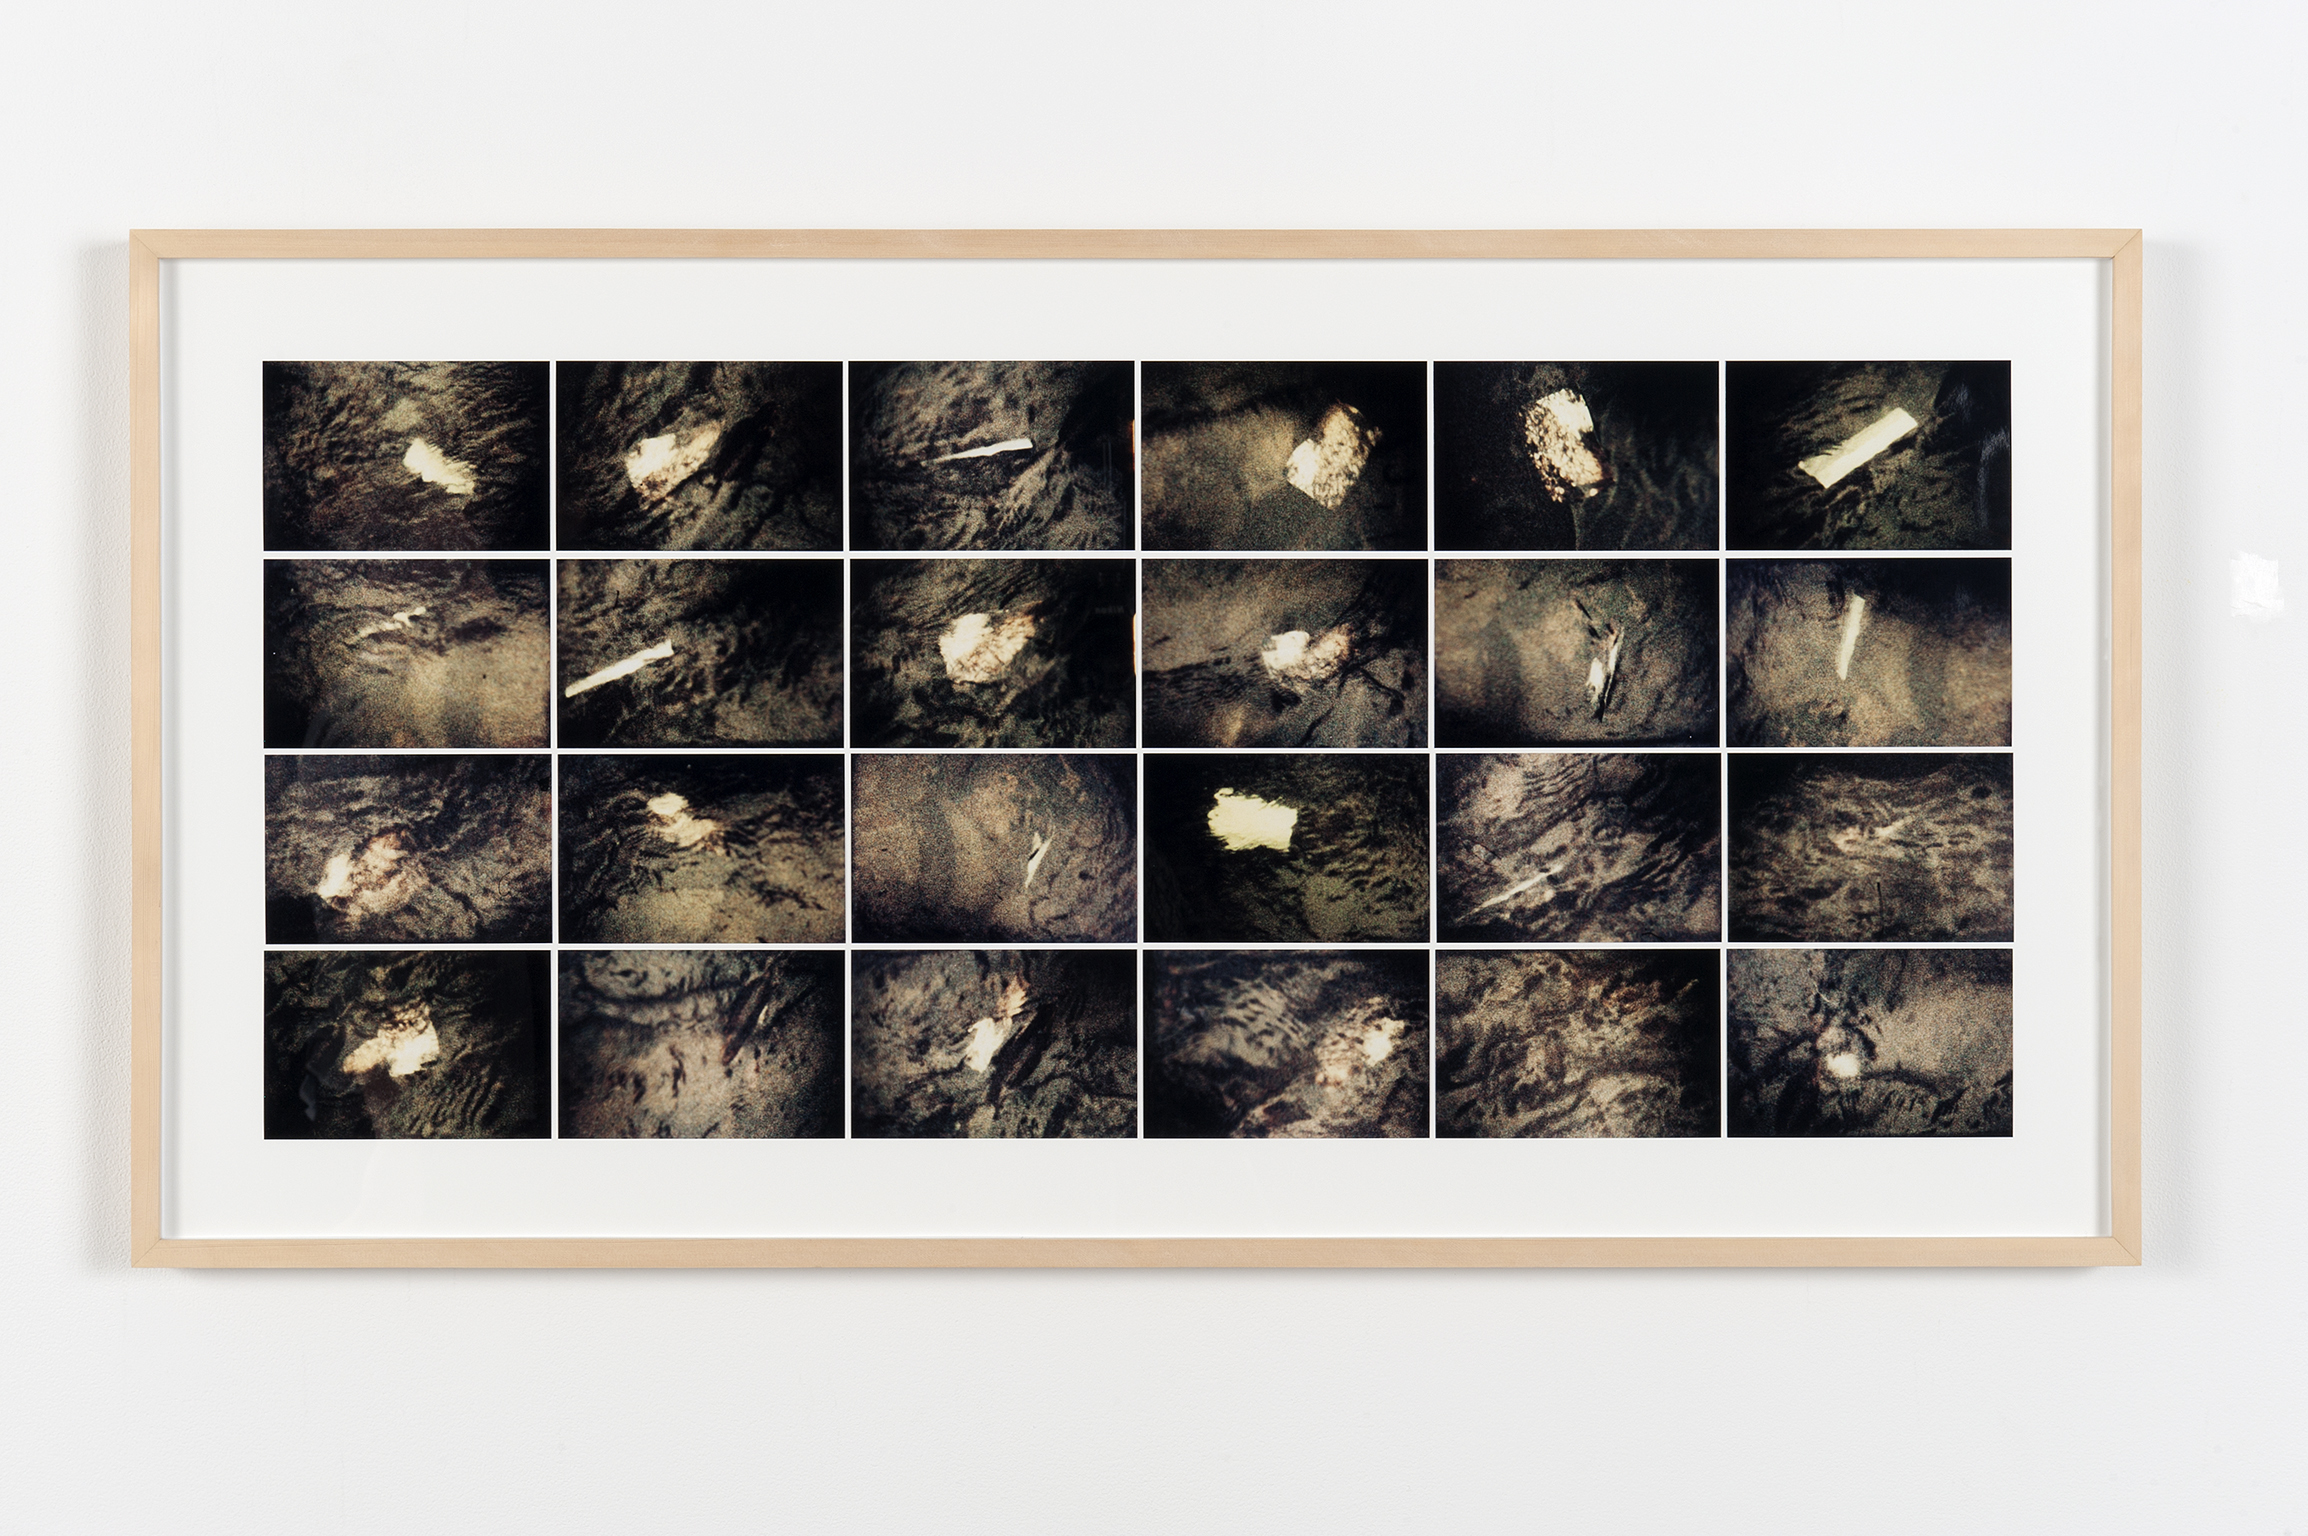 Robert Kleyn, Untitled (Book in Water), 1974–1975, colour photographs, 11 x 49 in. (28 x 125 cm)   by